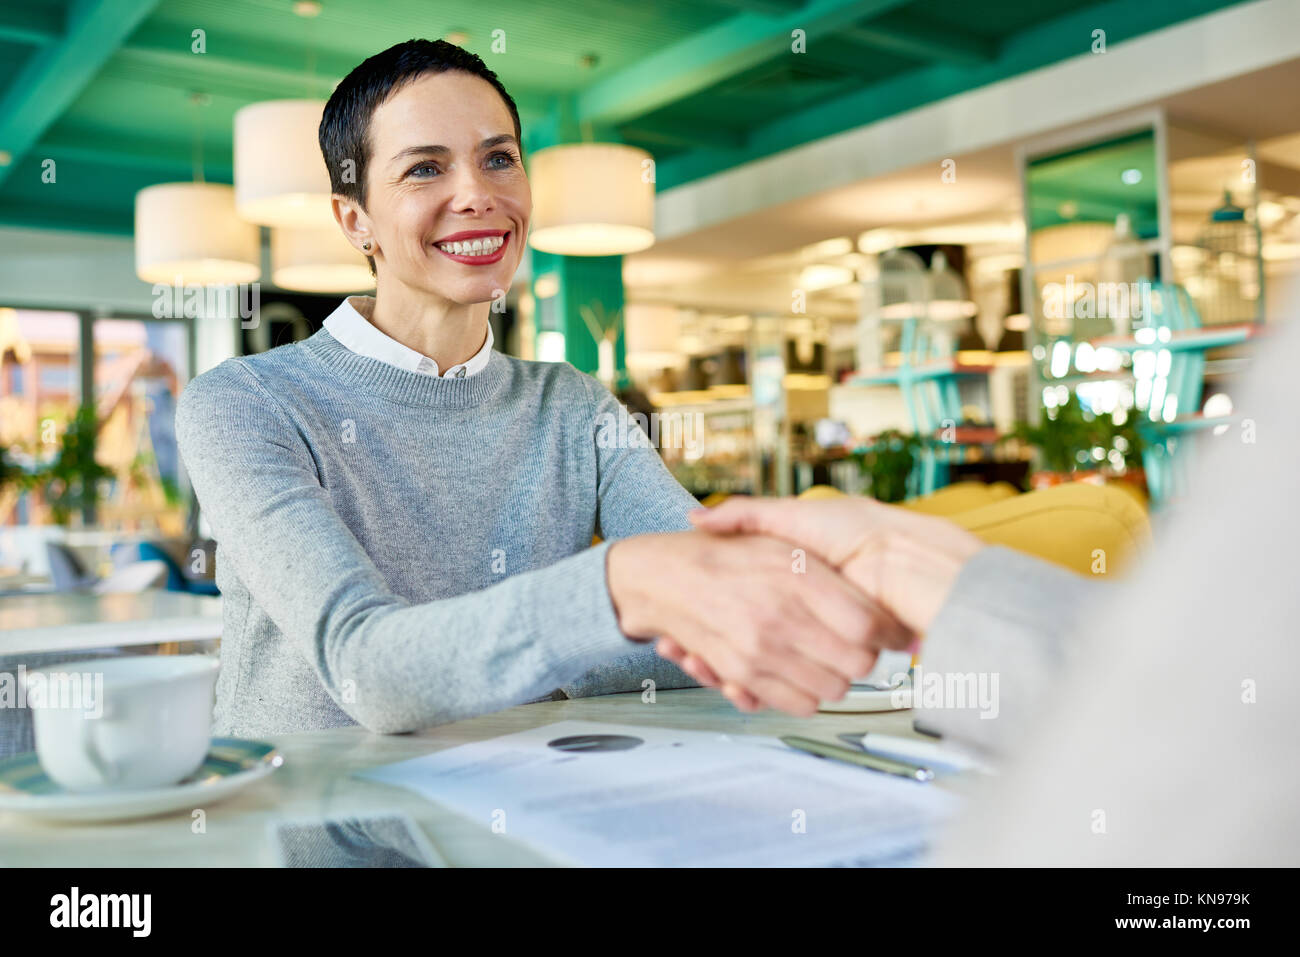 Businesswomen Shaking Hands in Cafe Meeting - Stock Image